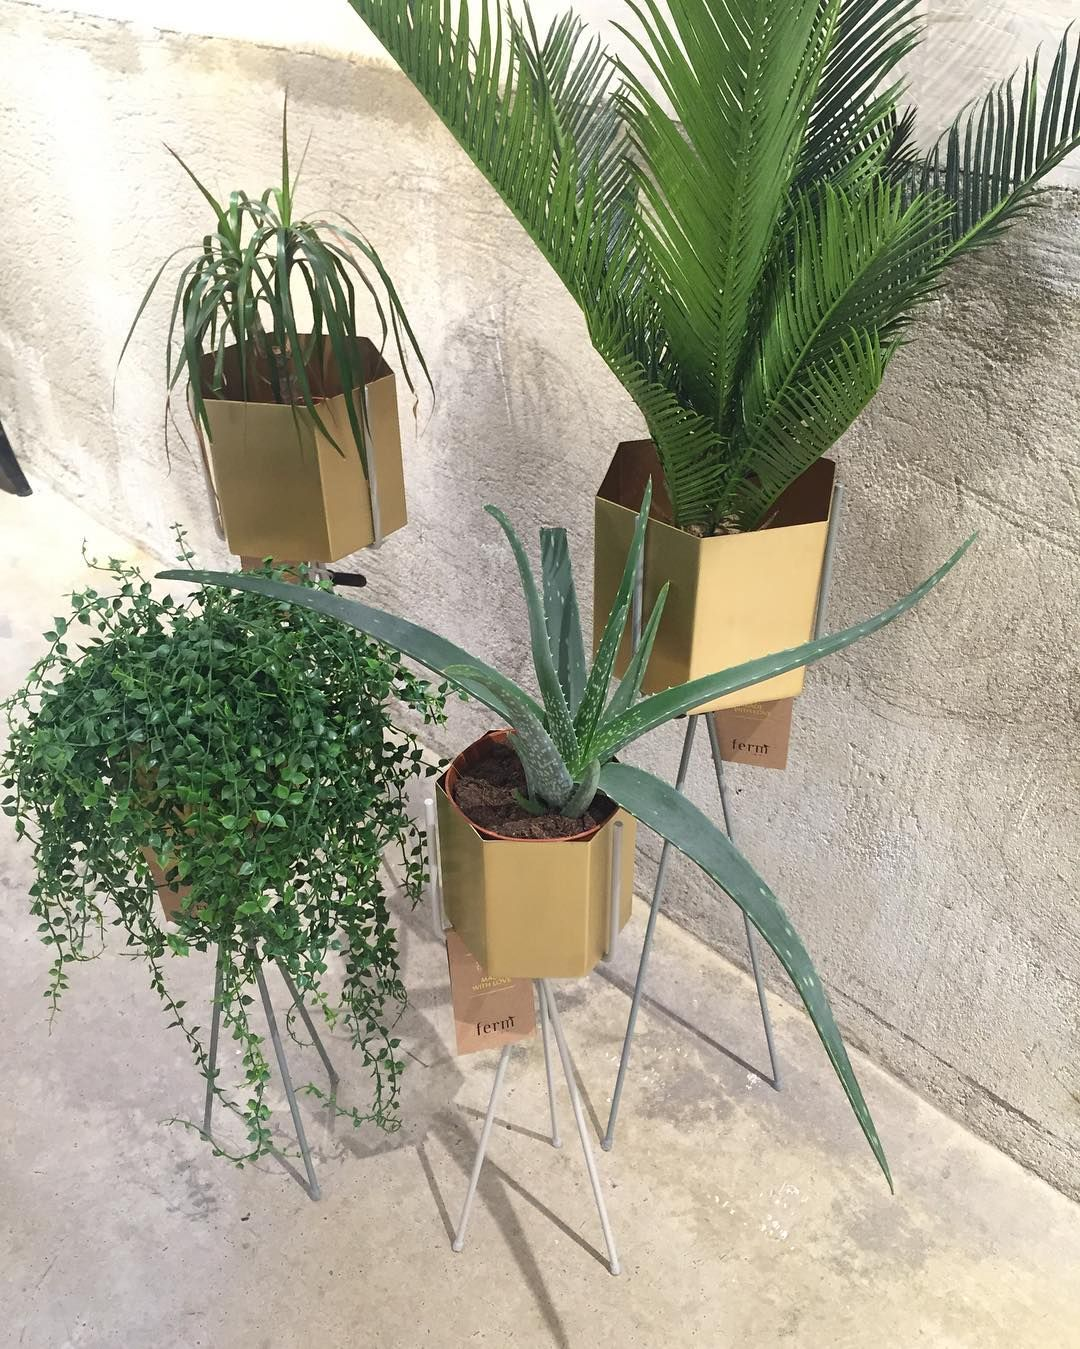 Ferm LIVING Plant Stand: With The Hexagon Brass Pots, Perfect For Adding  Some Foliage To A Small Space And Very Portable Too!